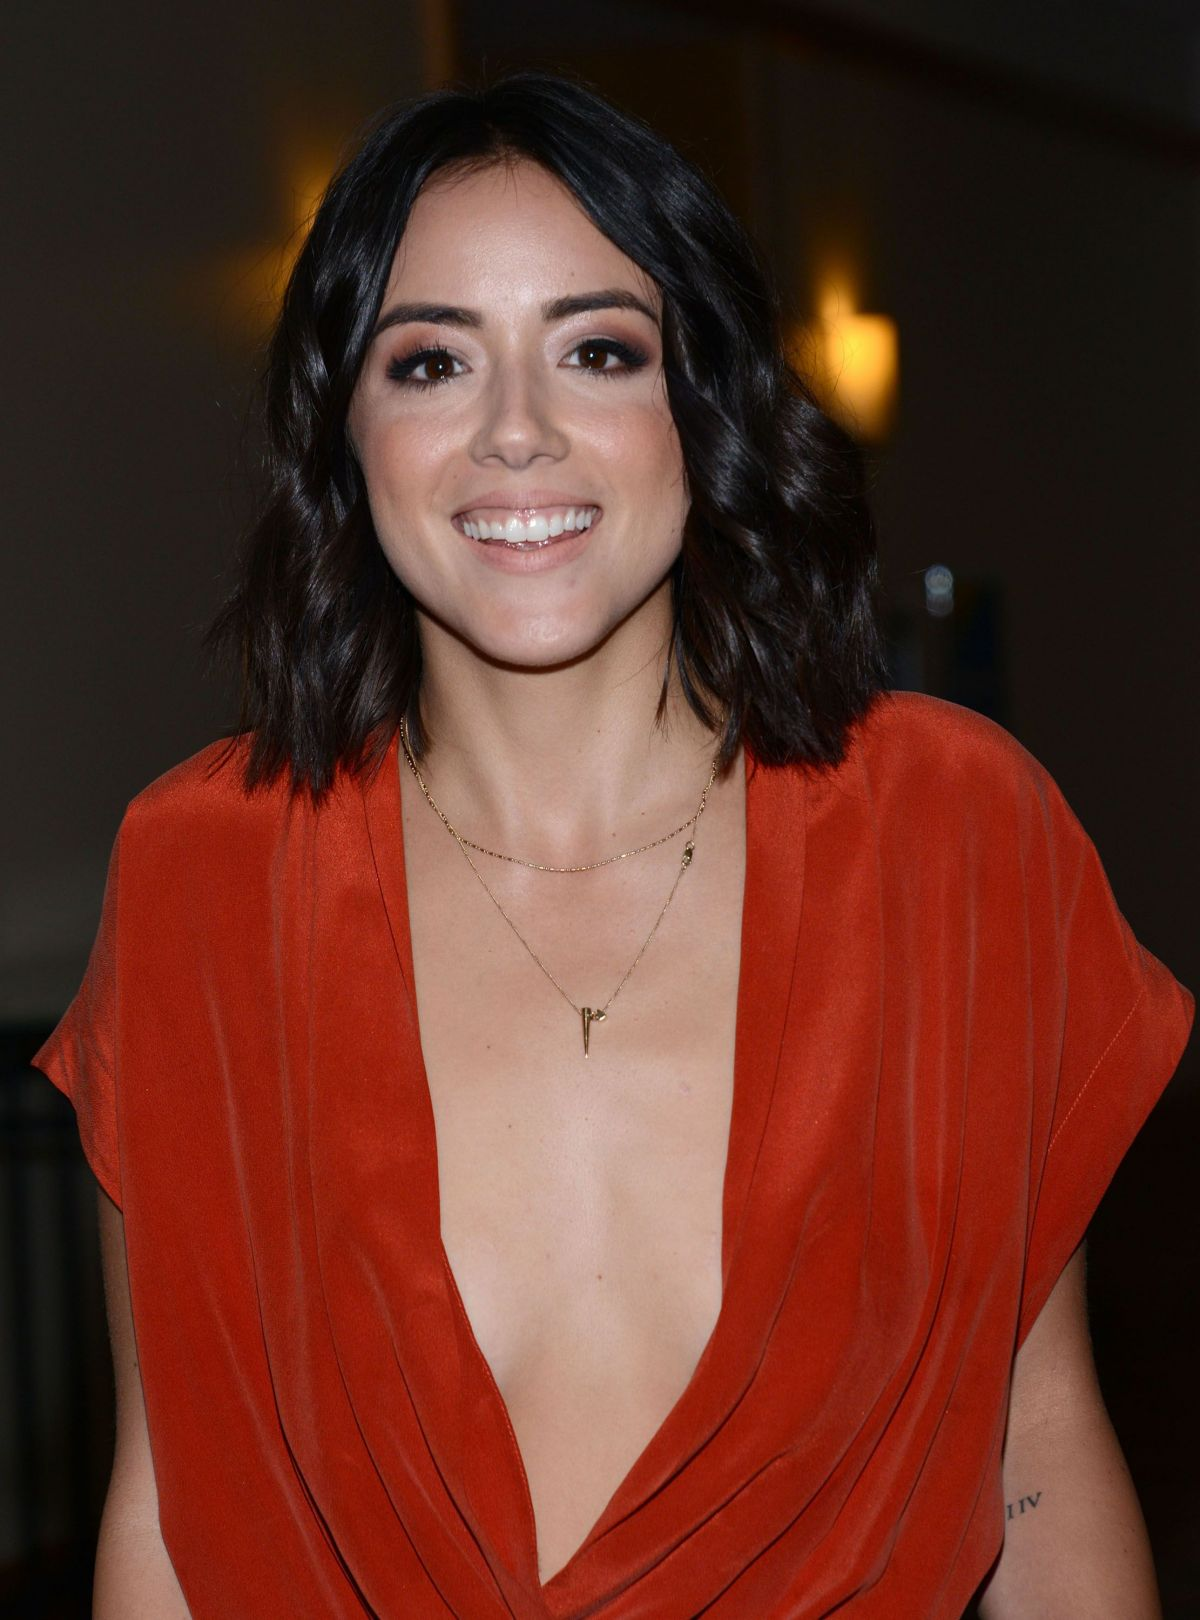 CHLOE BENNET at Agents of s.h.i.e.l.d. Press Line at Comic ...  CHLOE BENNET at...